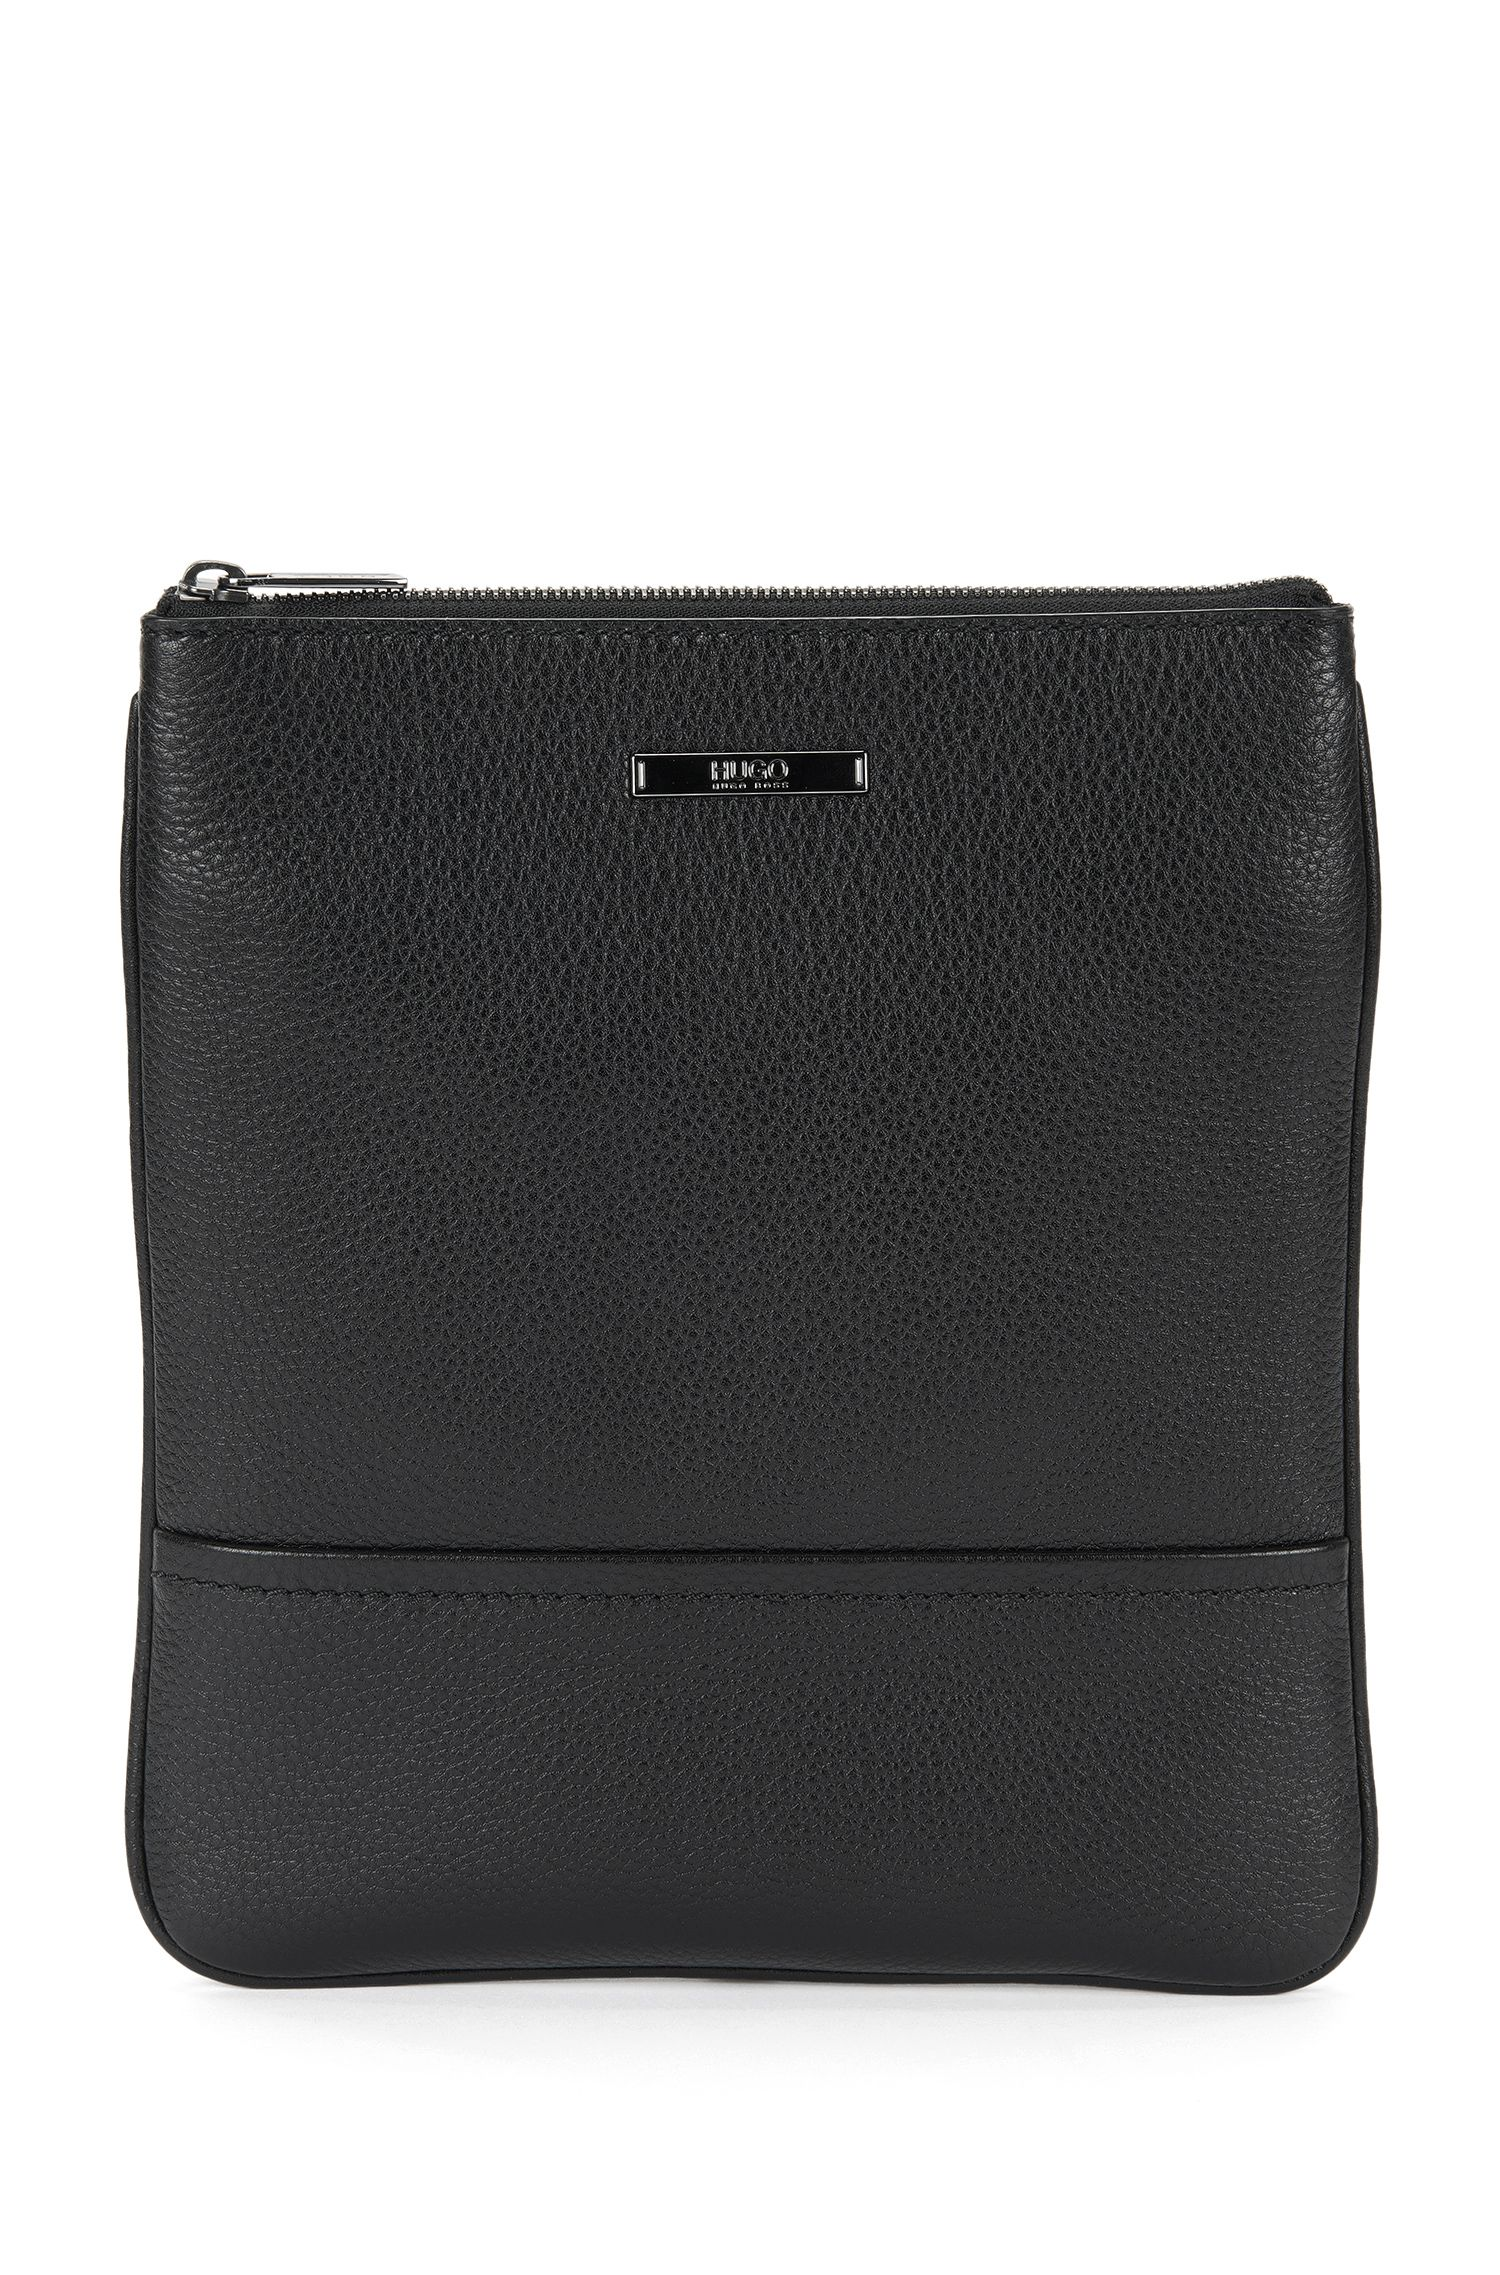 Grained leather pouch with shoulder strap